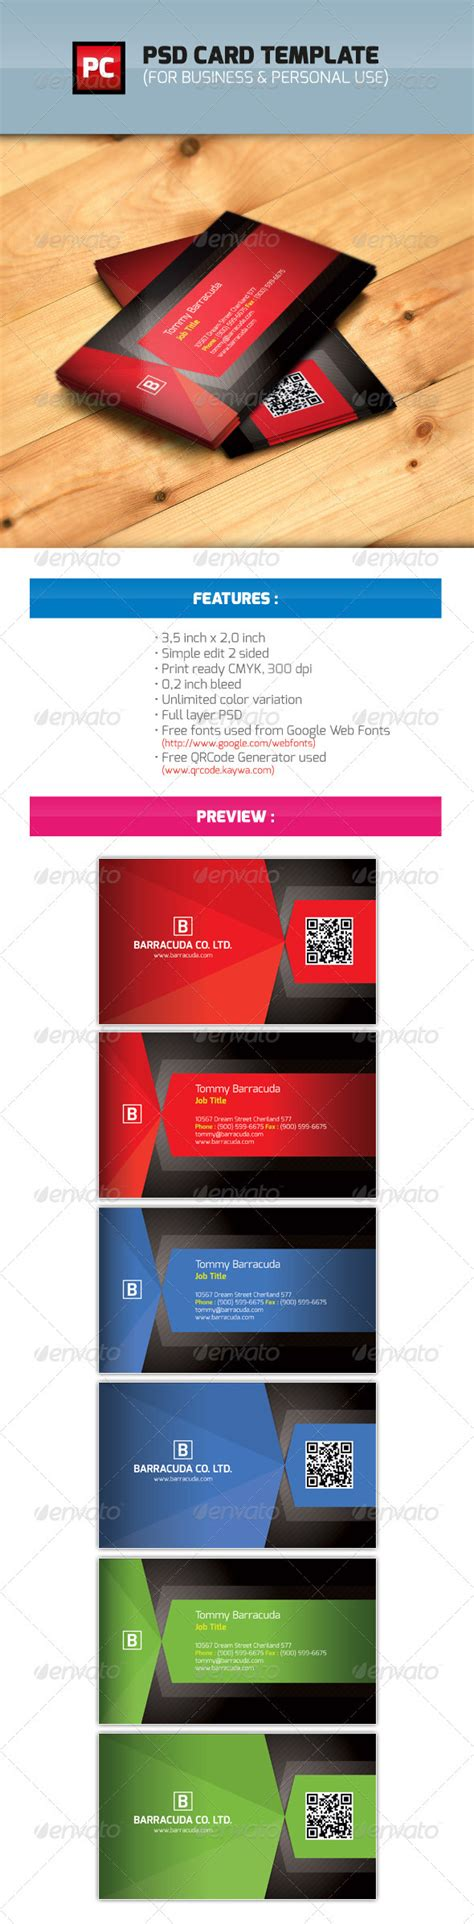 personal cards templates psd psd business personal card template graphicriver